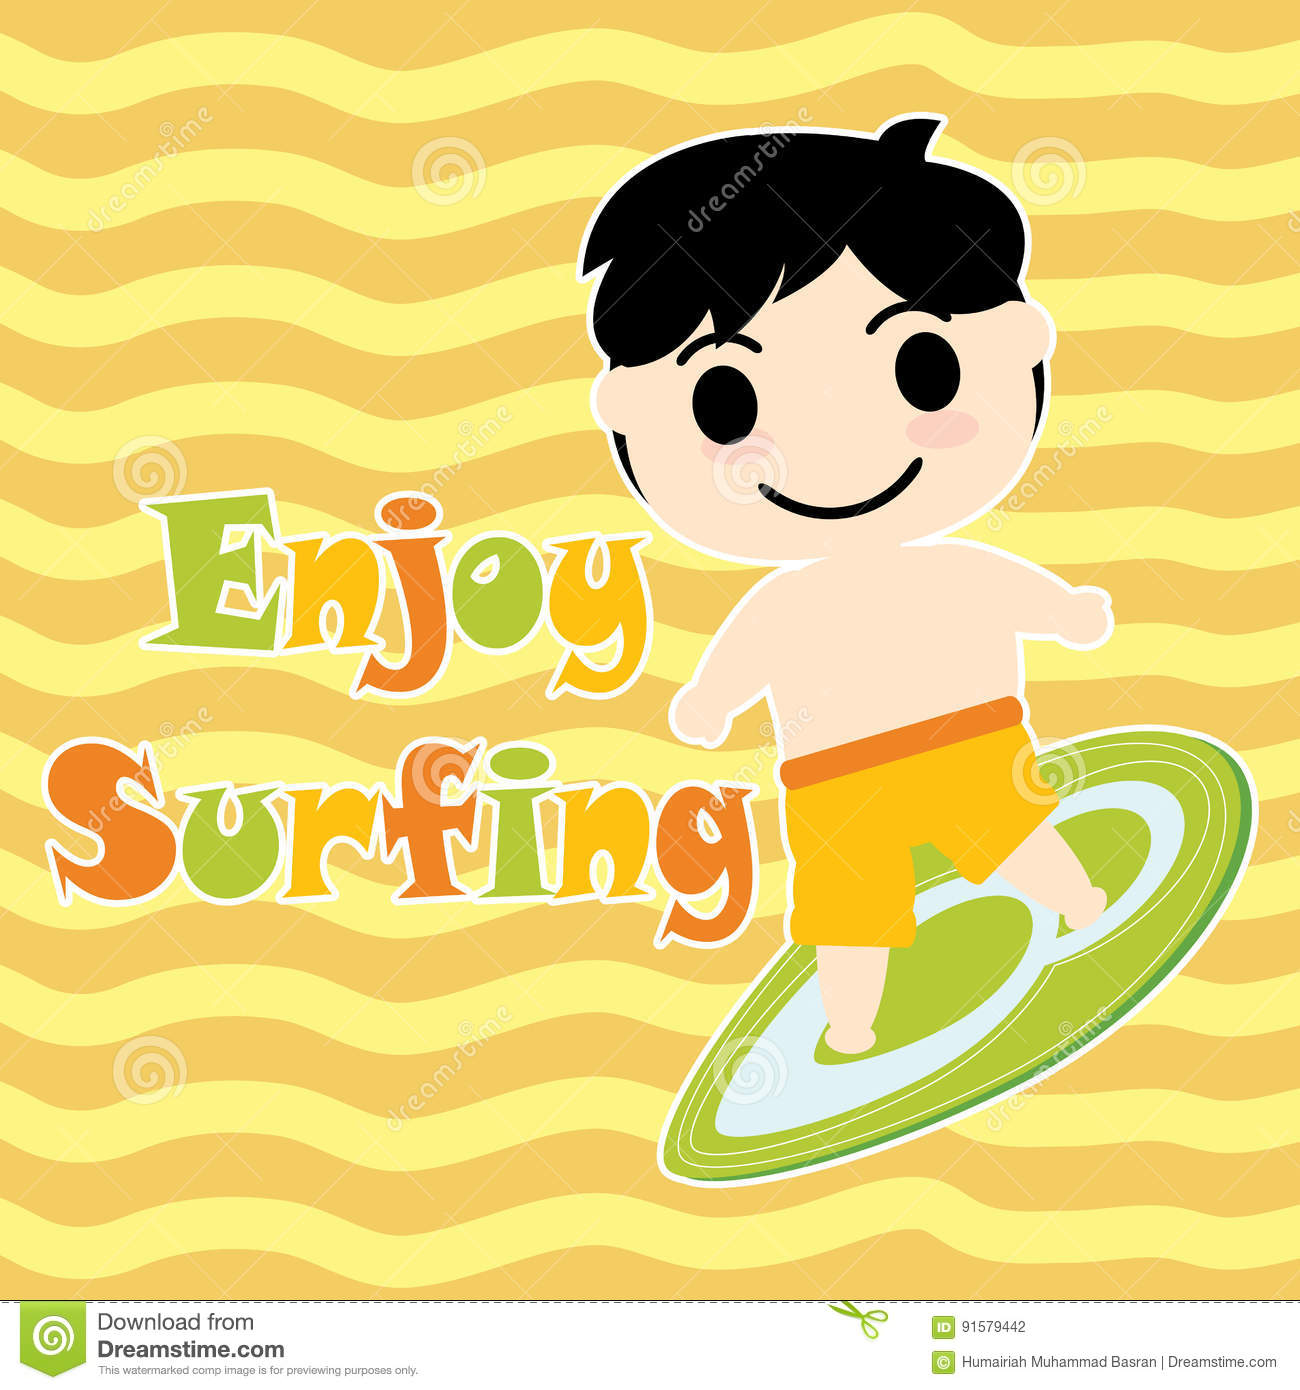 Cute Boy With Surfing Board Cartoon Summer Postcard Wallpaper And